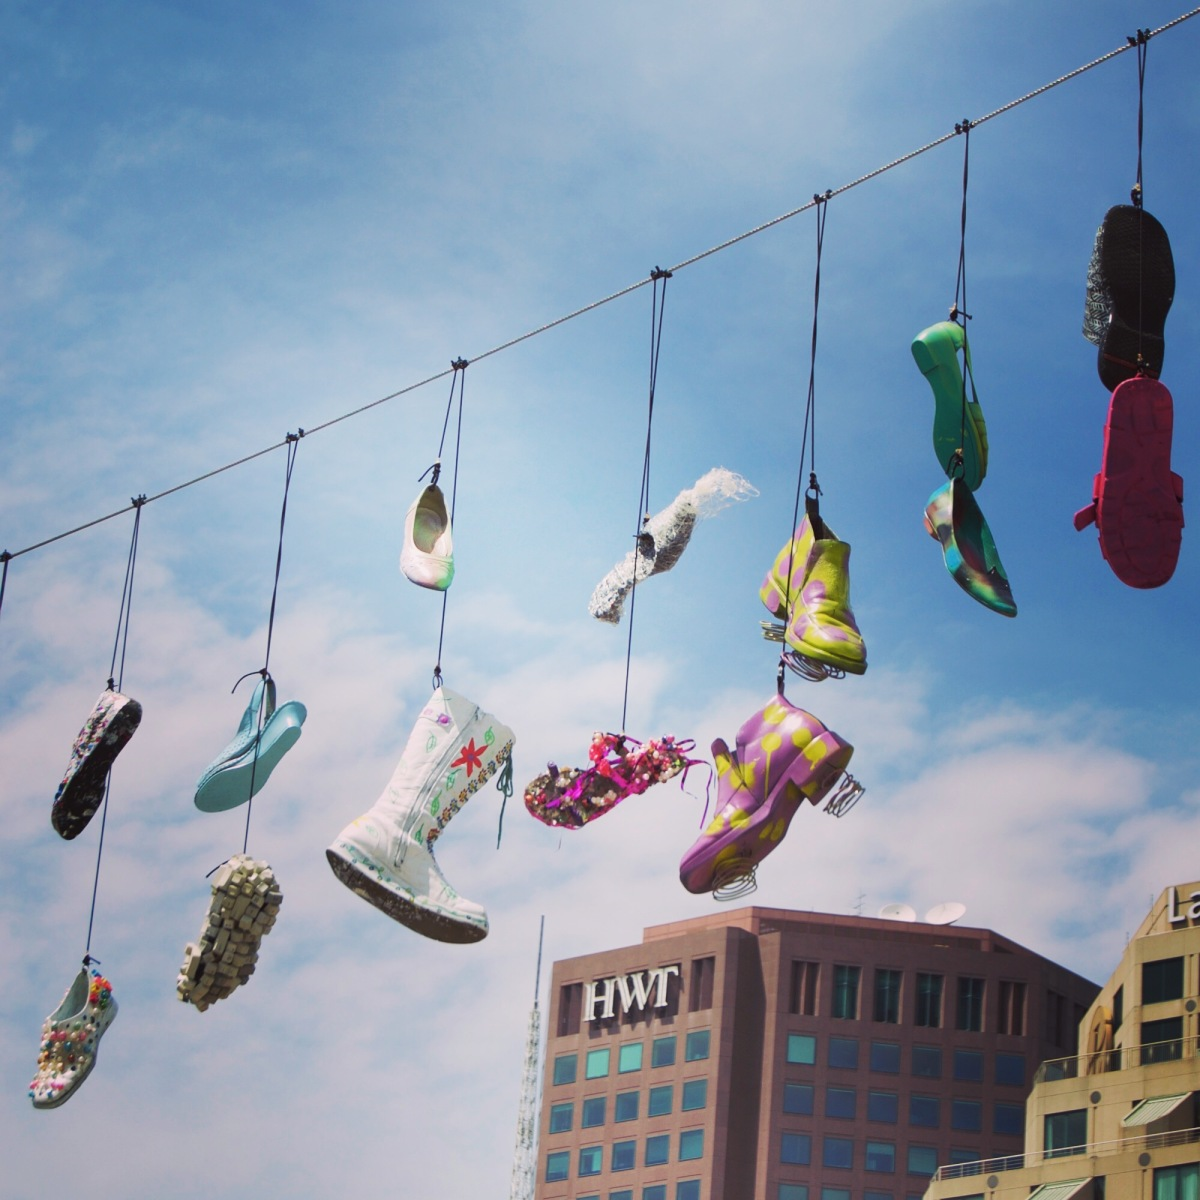 Shoes dangling against a blue sky